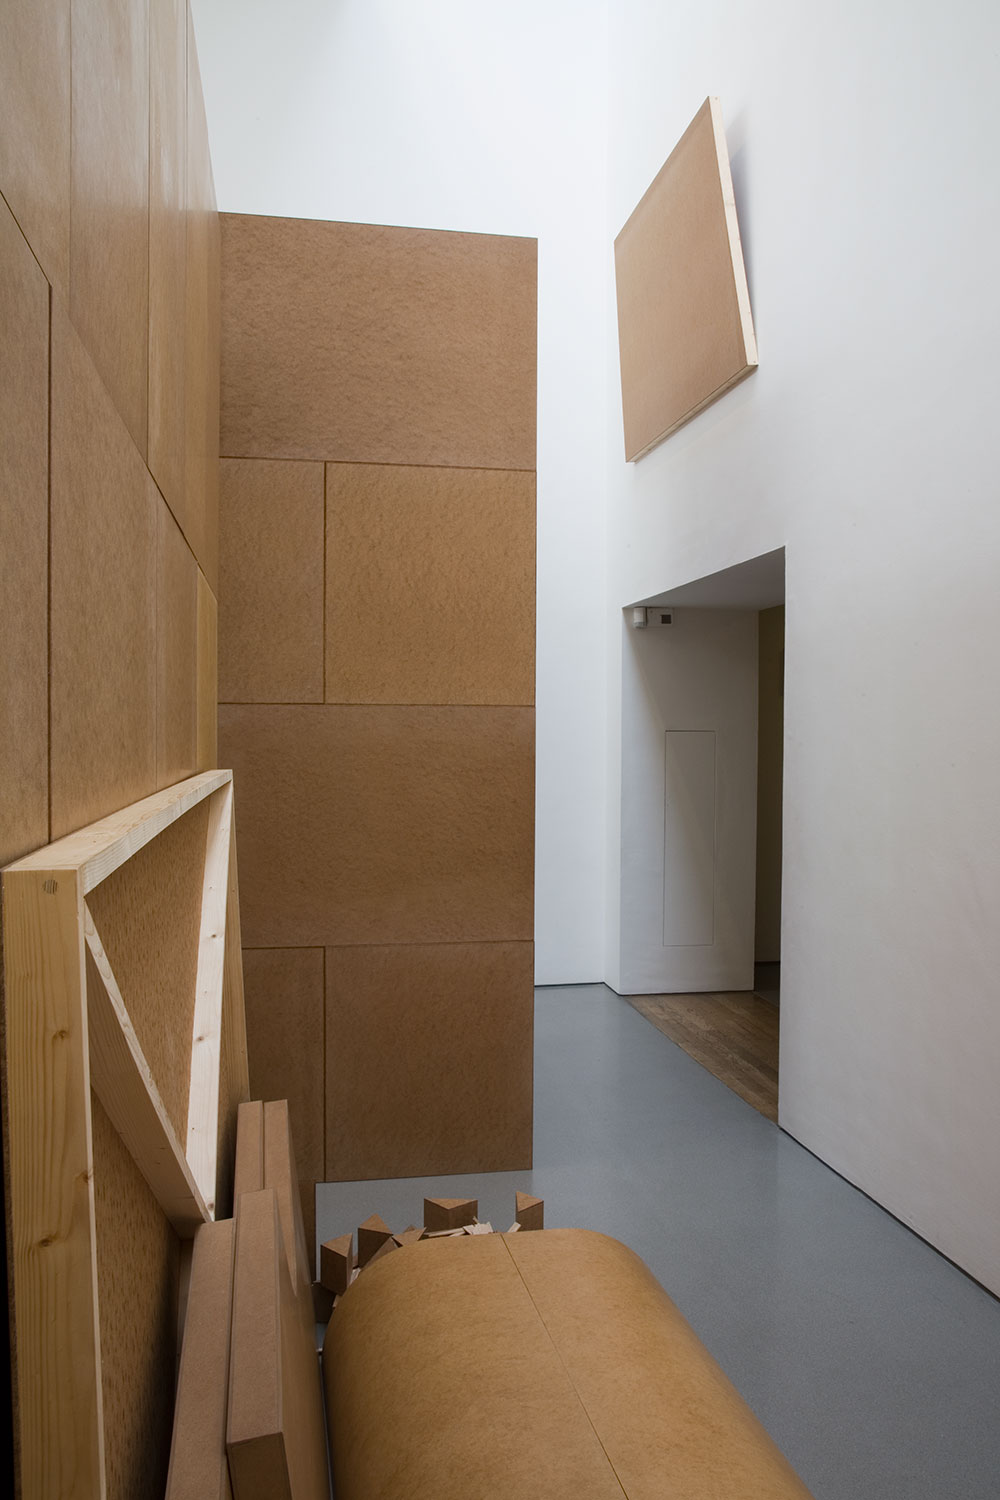 Installation view of Imi Knoebel: Primary Structures 1966/2006 2